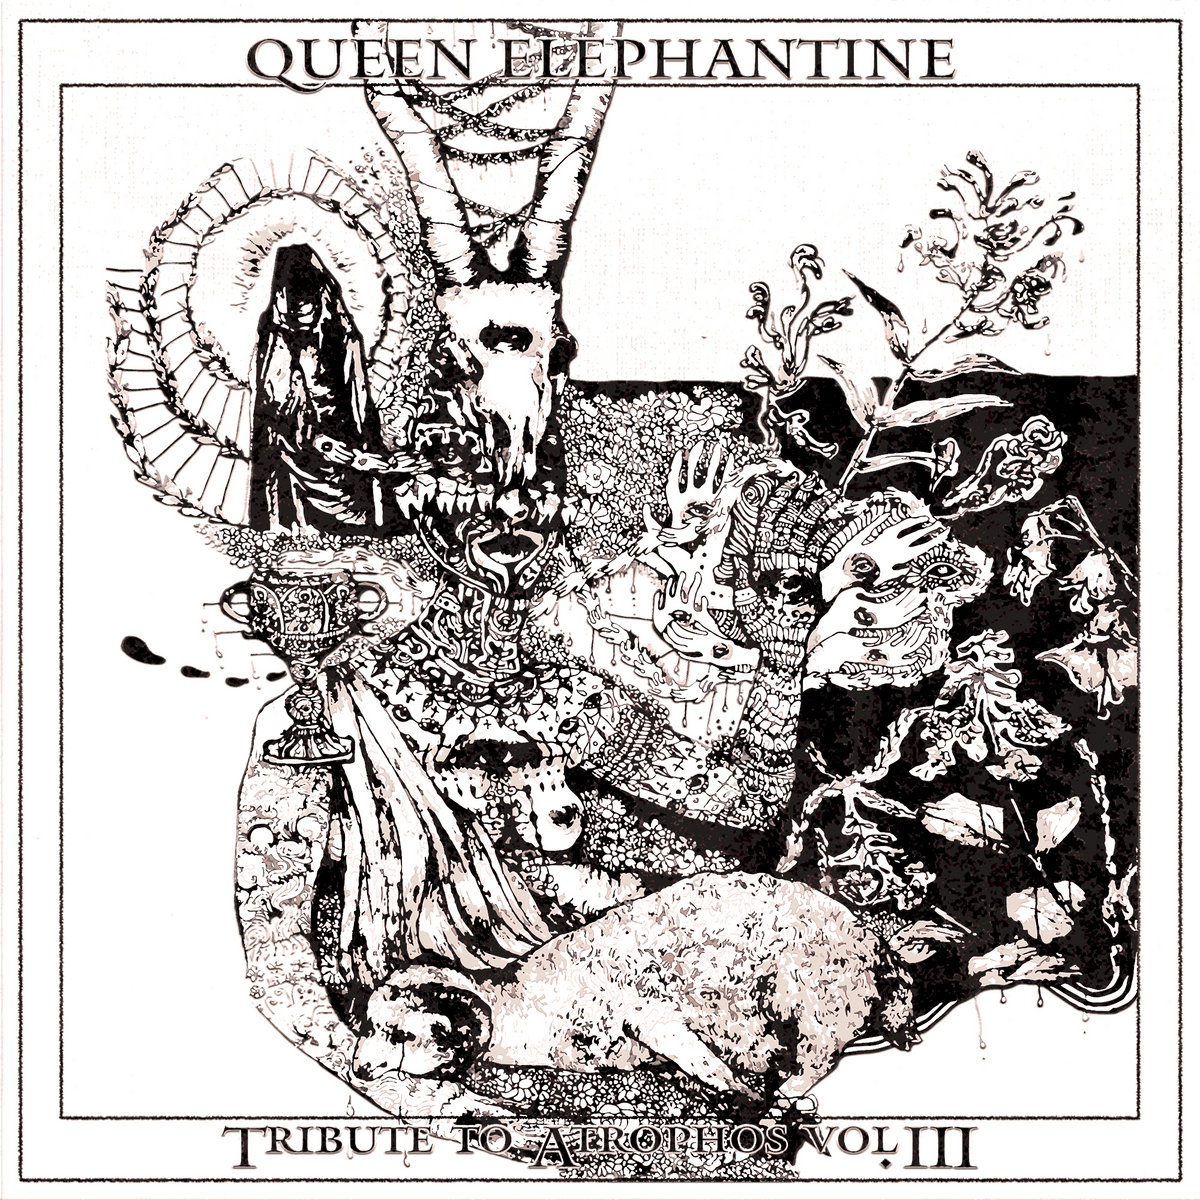 Queen Elephantine Tribute to Atrophos Vol III